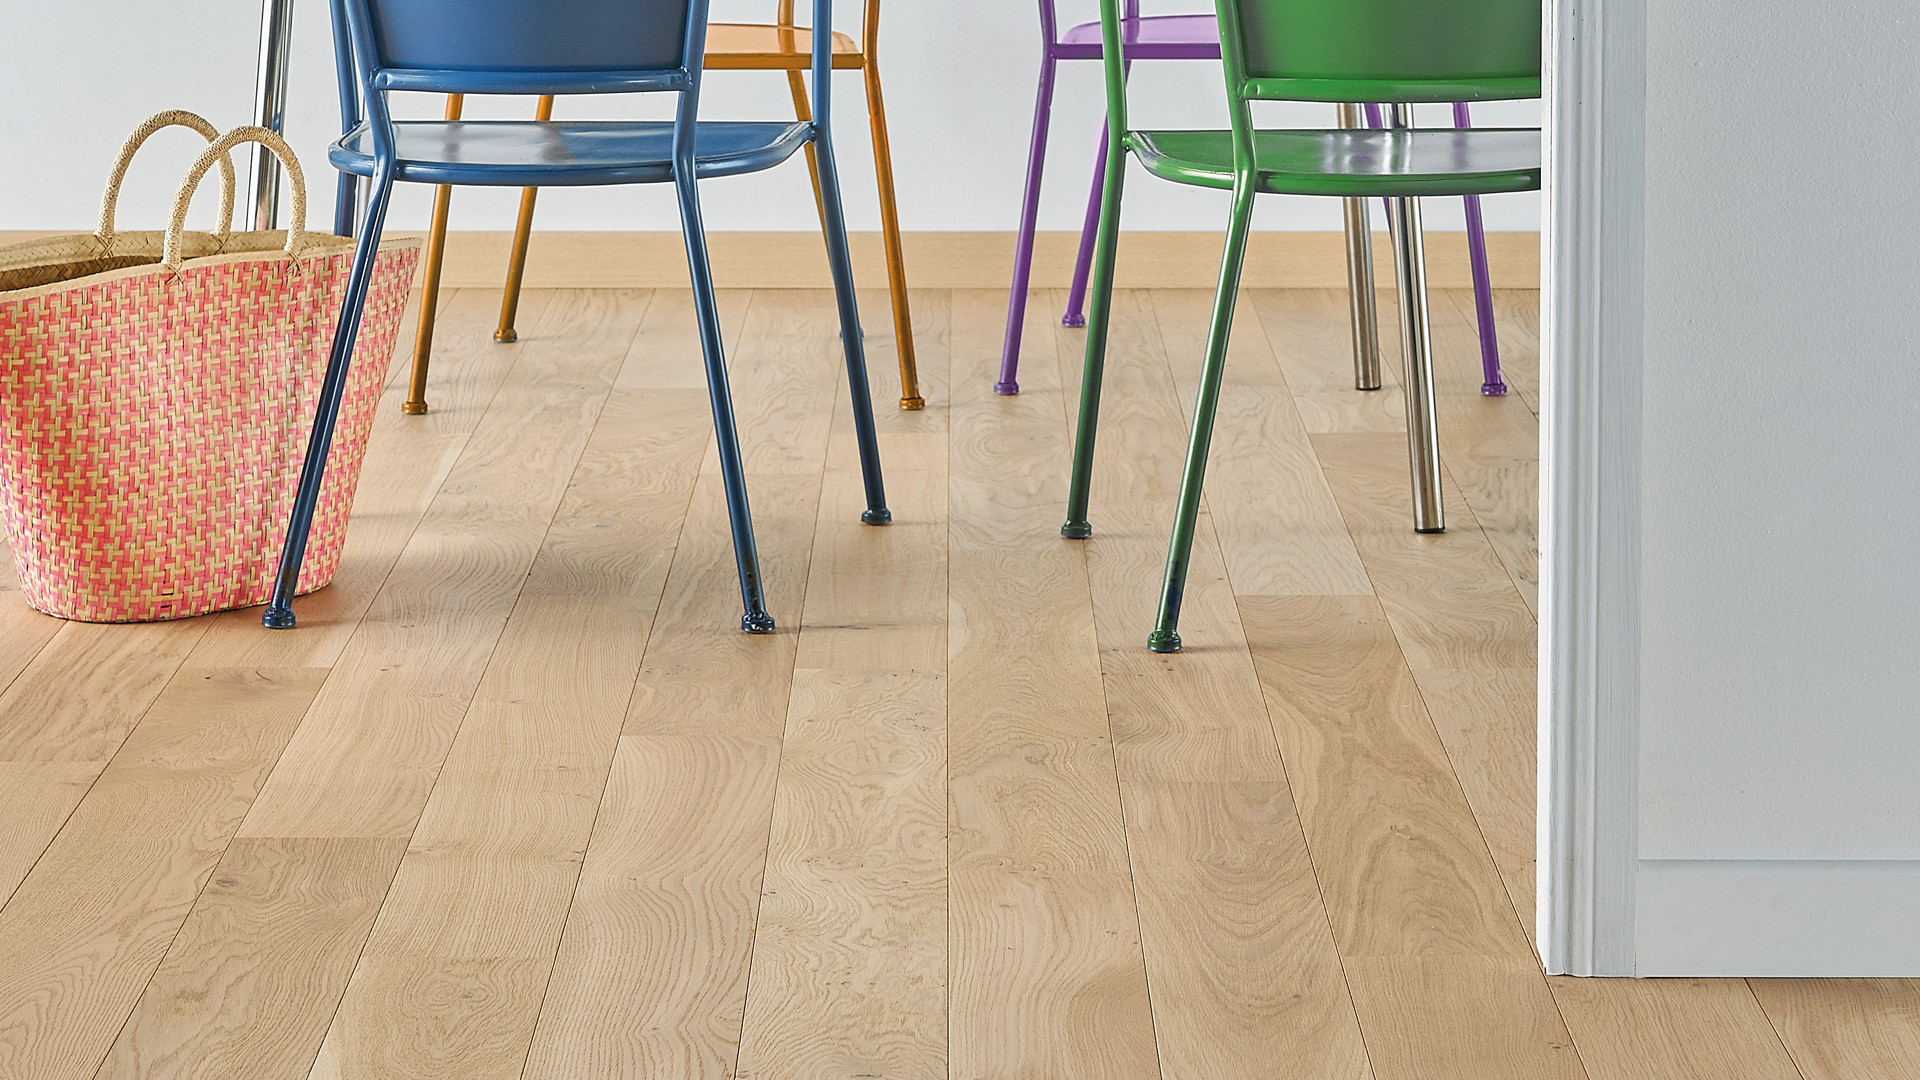 Parquet en French oak Mix Bois flotté 12 mm